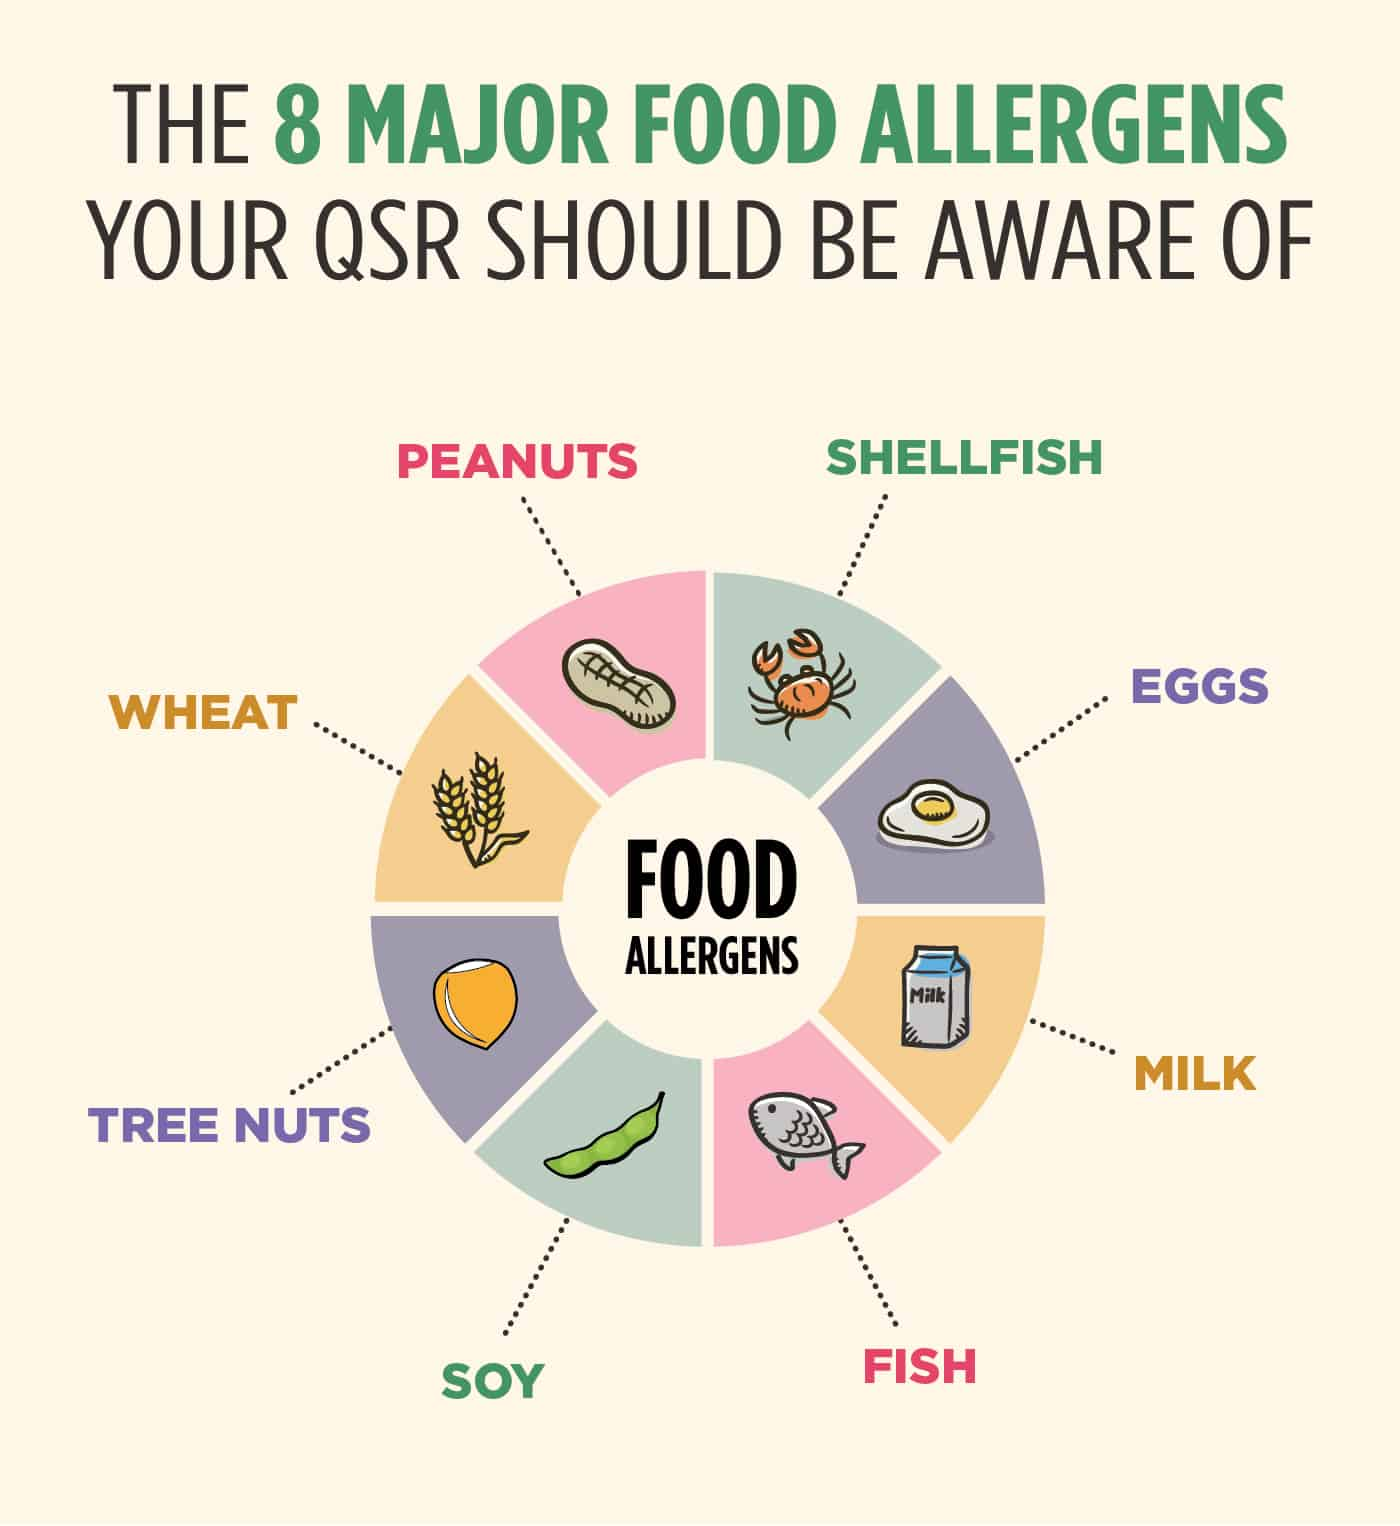 Food allergies QSR should be aware of